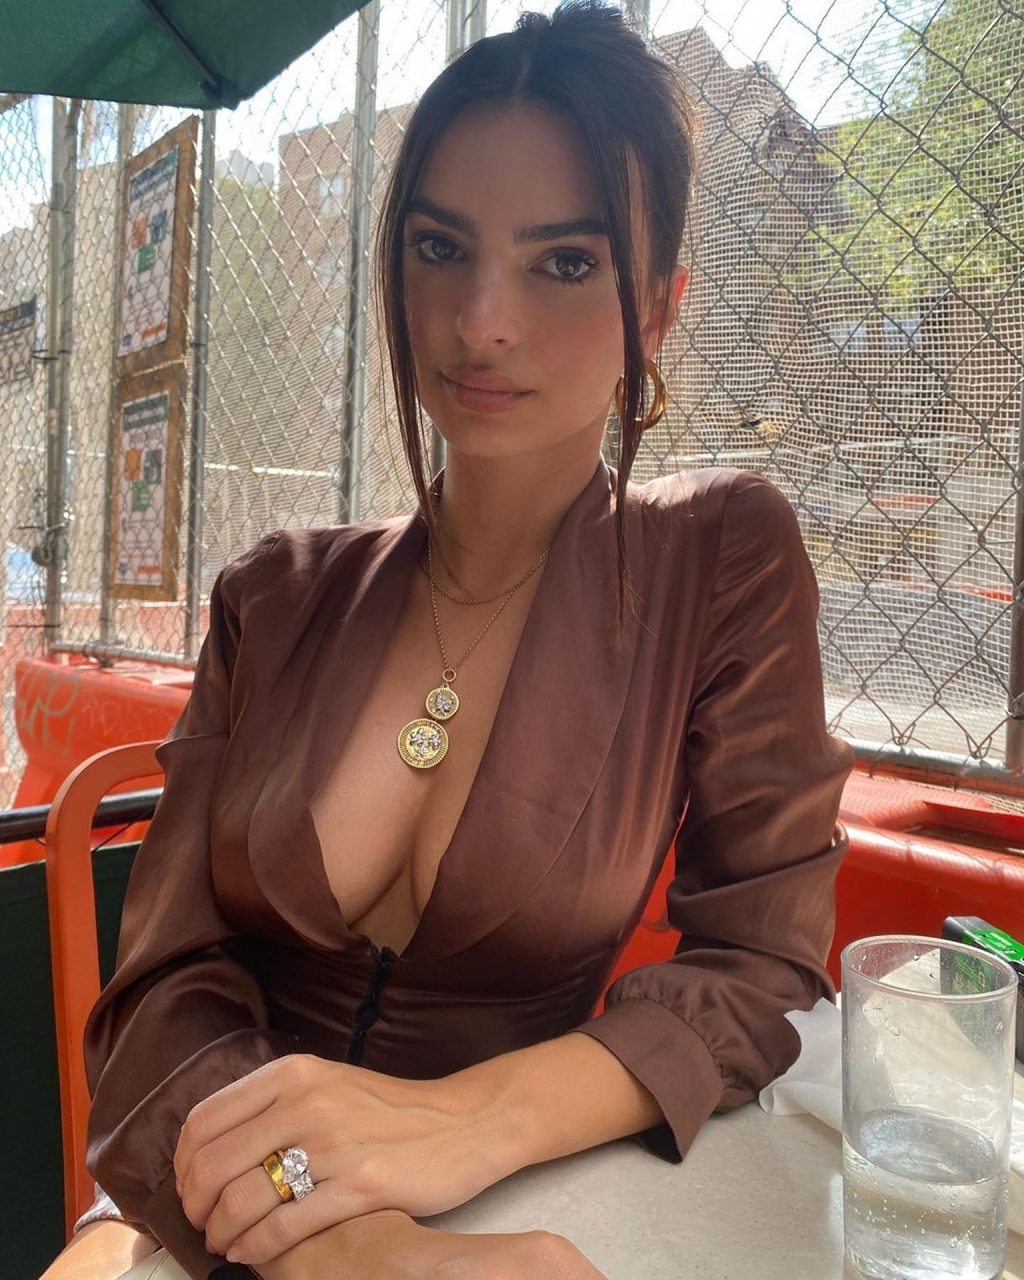 Emily Ratajkowski Displays Her Sexy Legs and Tits While on a Walk in NYC (38 Photos)